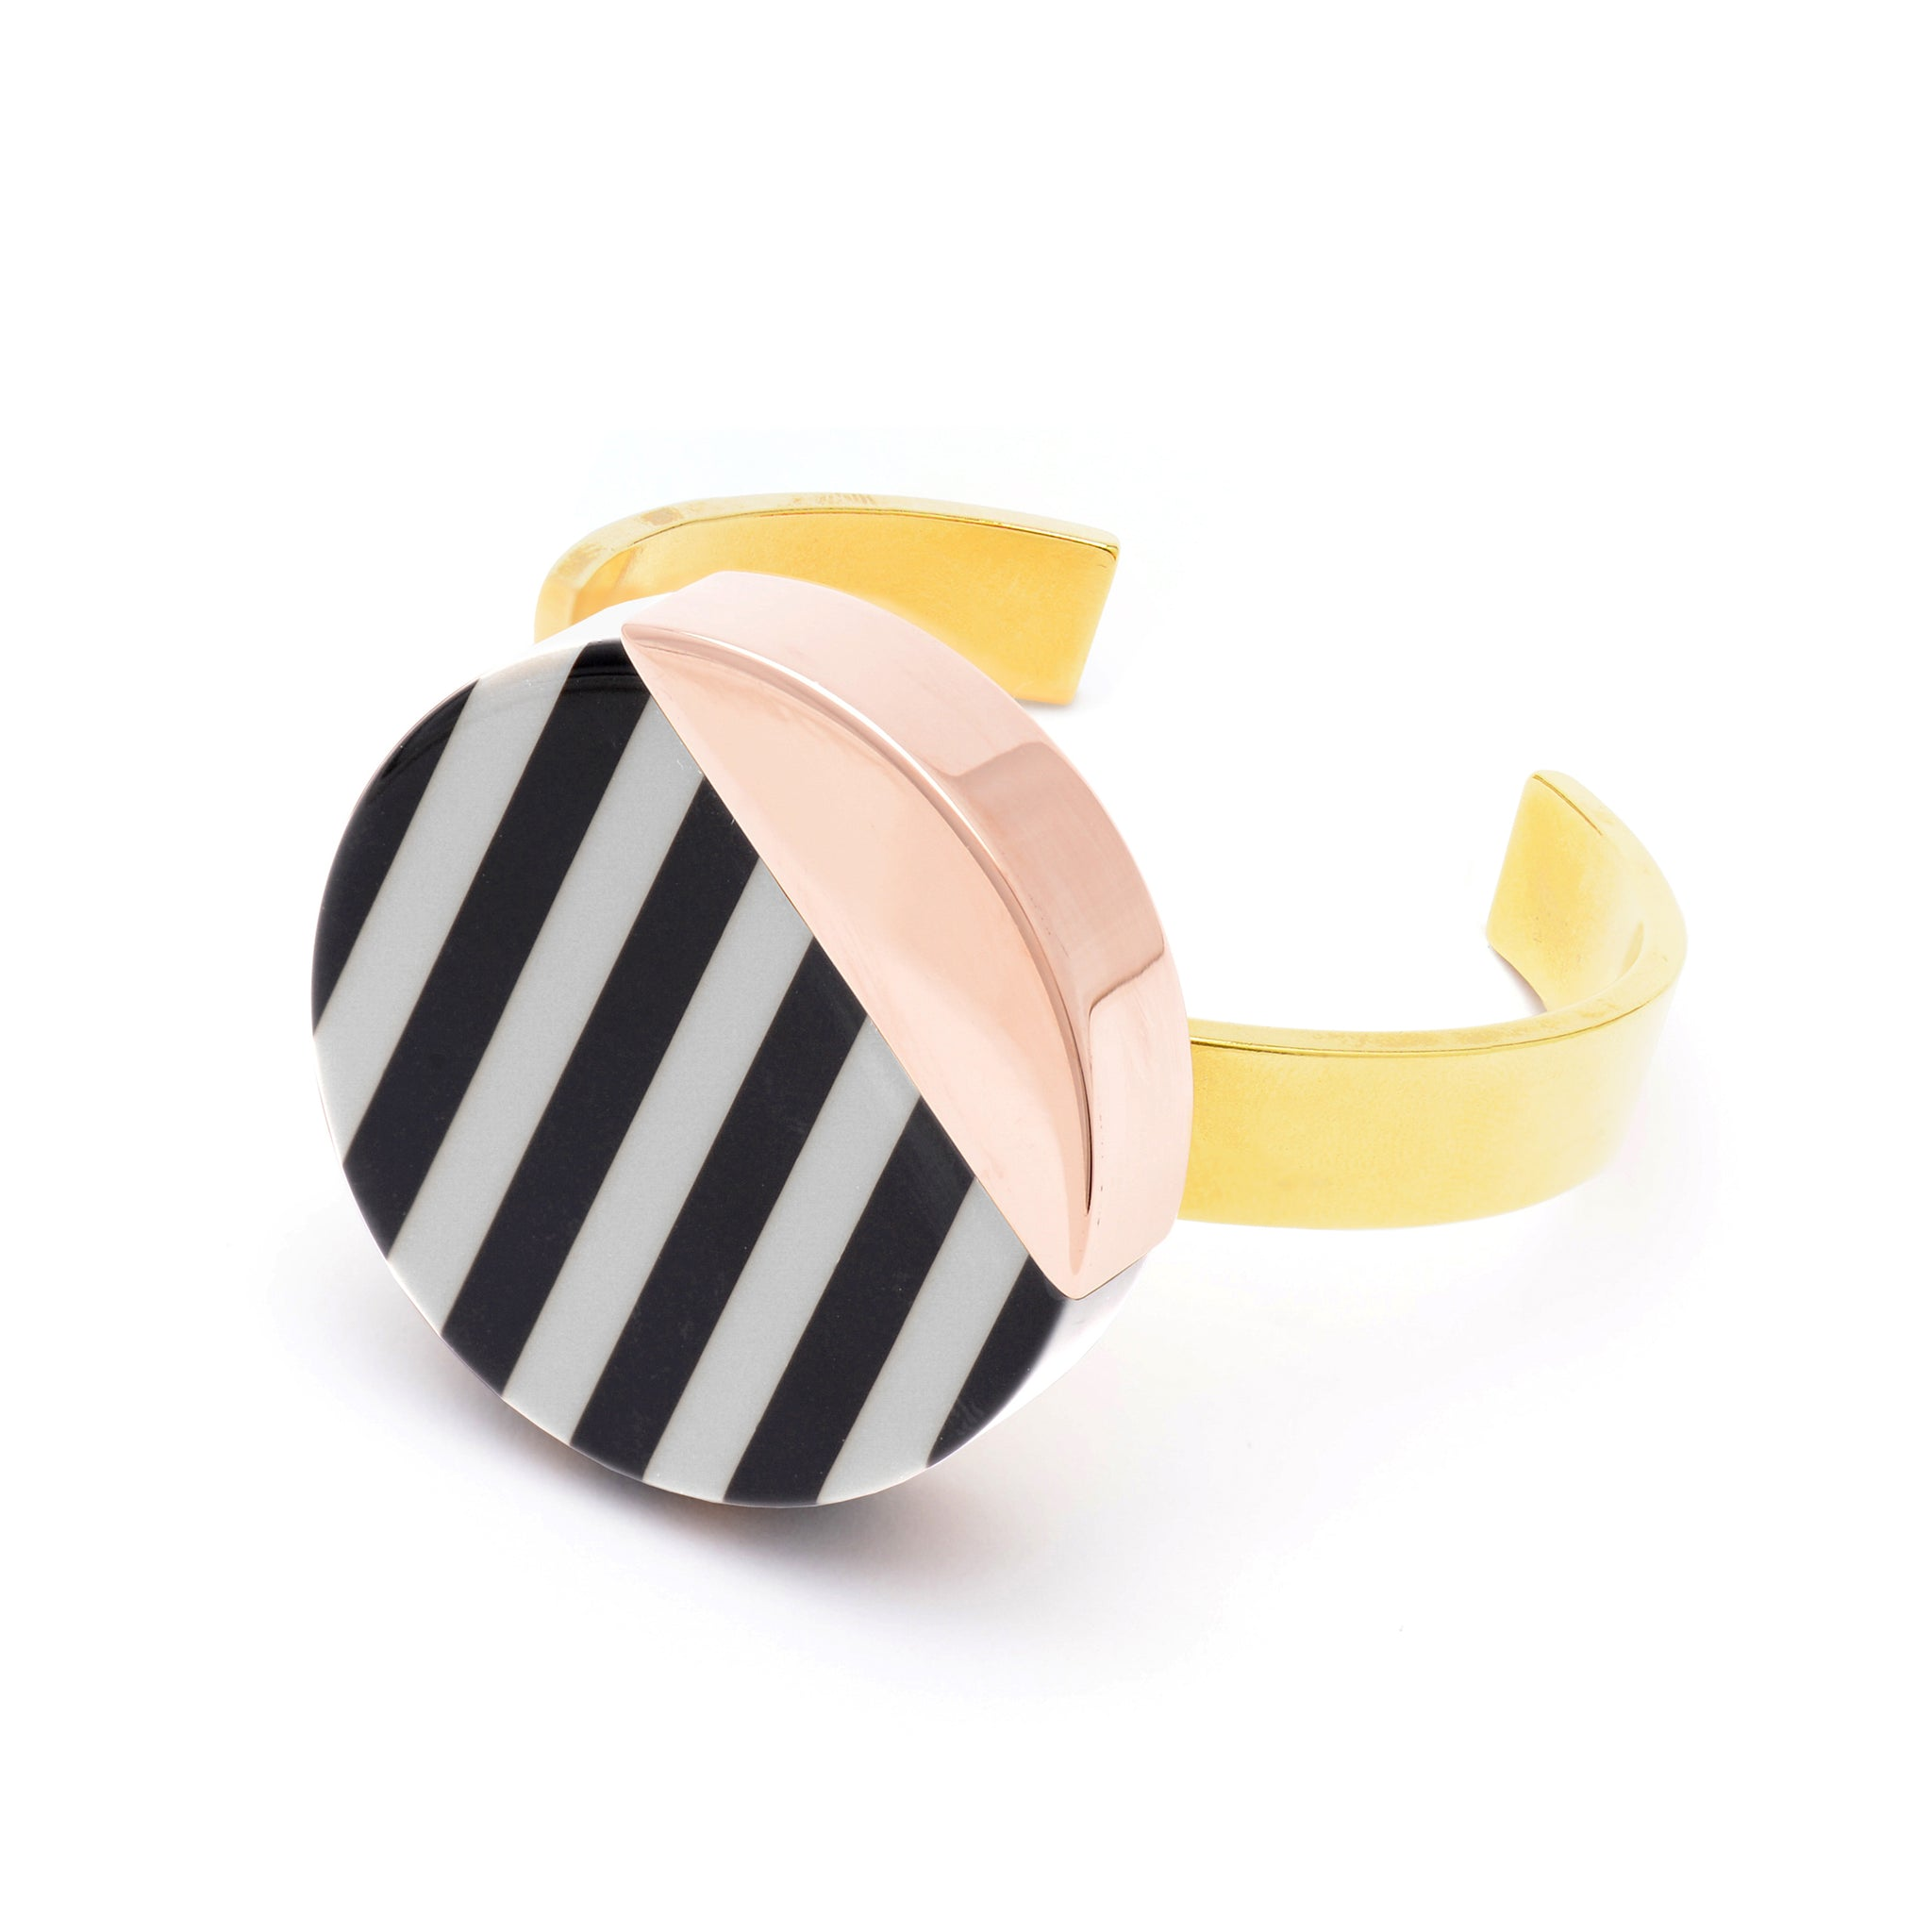 Bracelet with black and white striped Plate